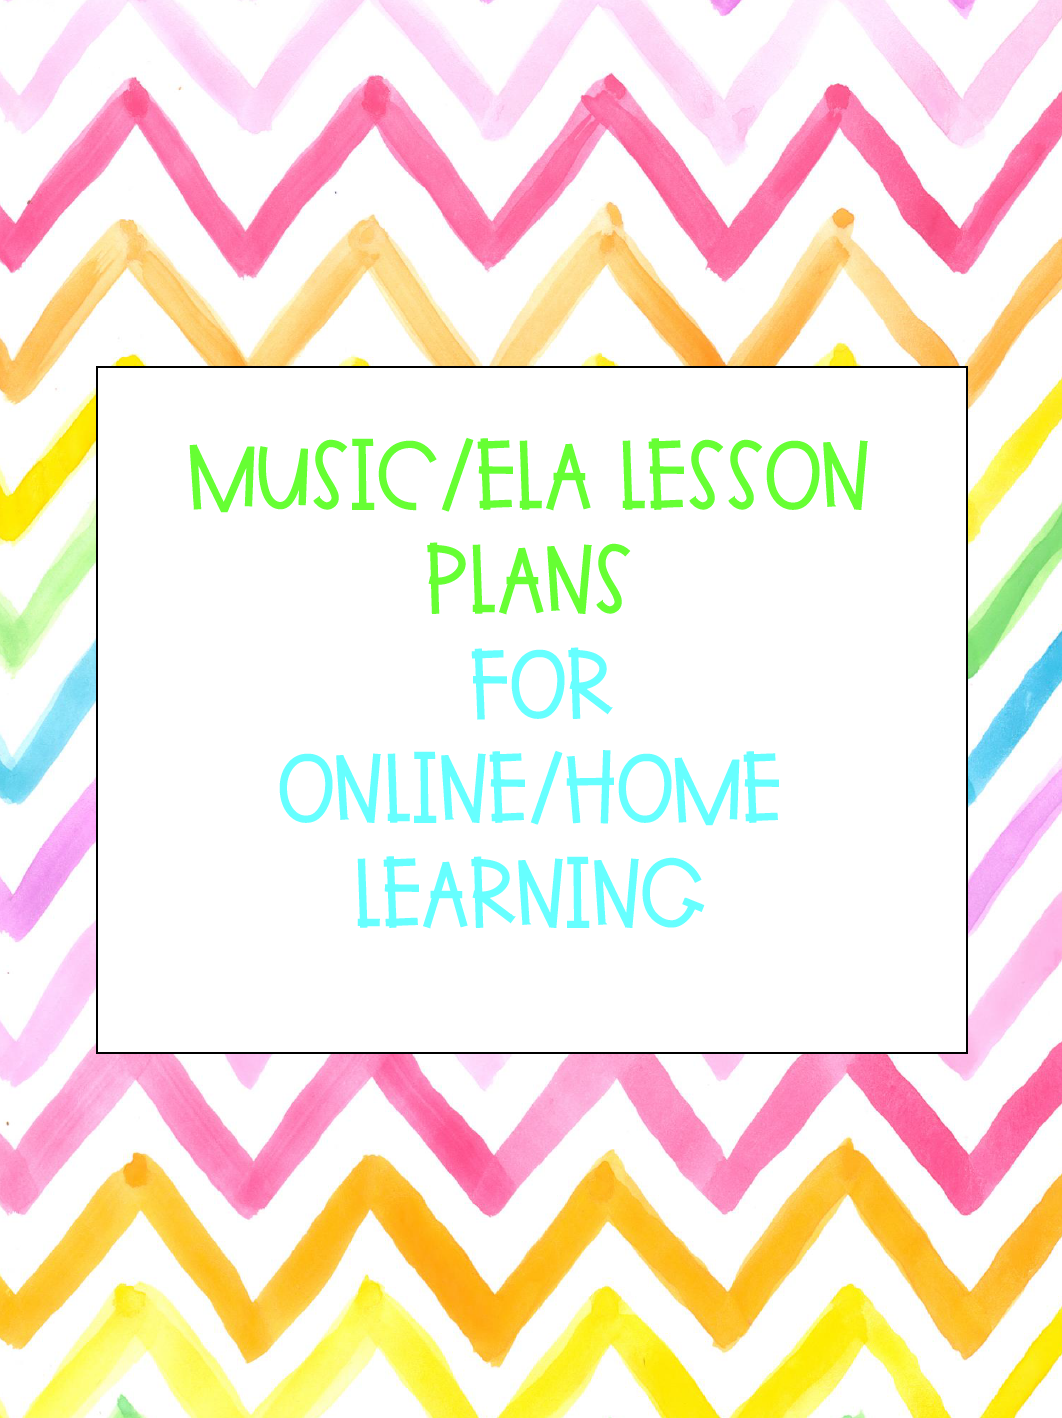 Music/ELA lesson plans for at home learning